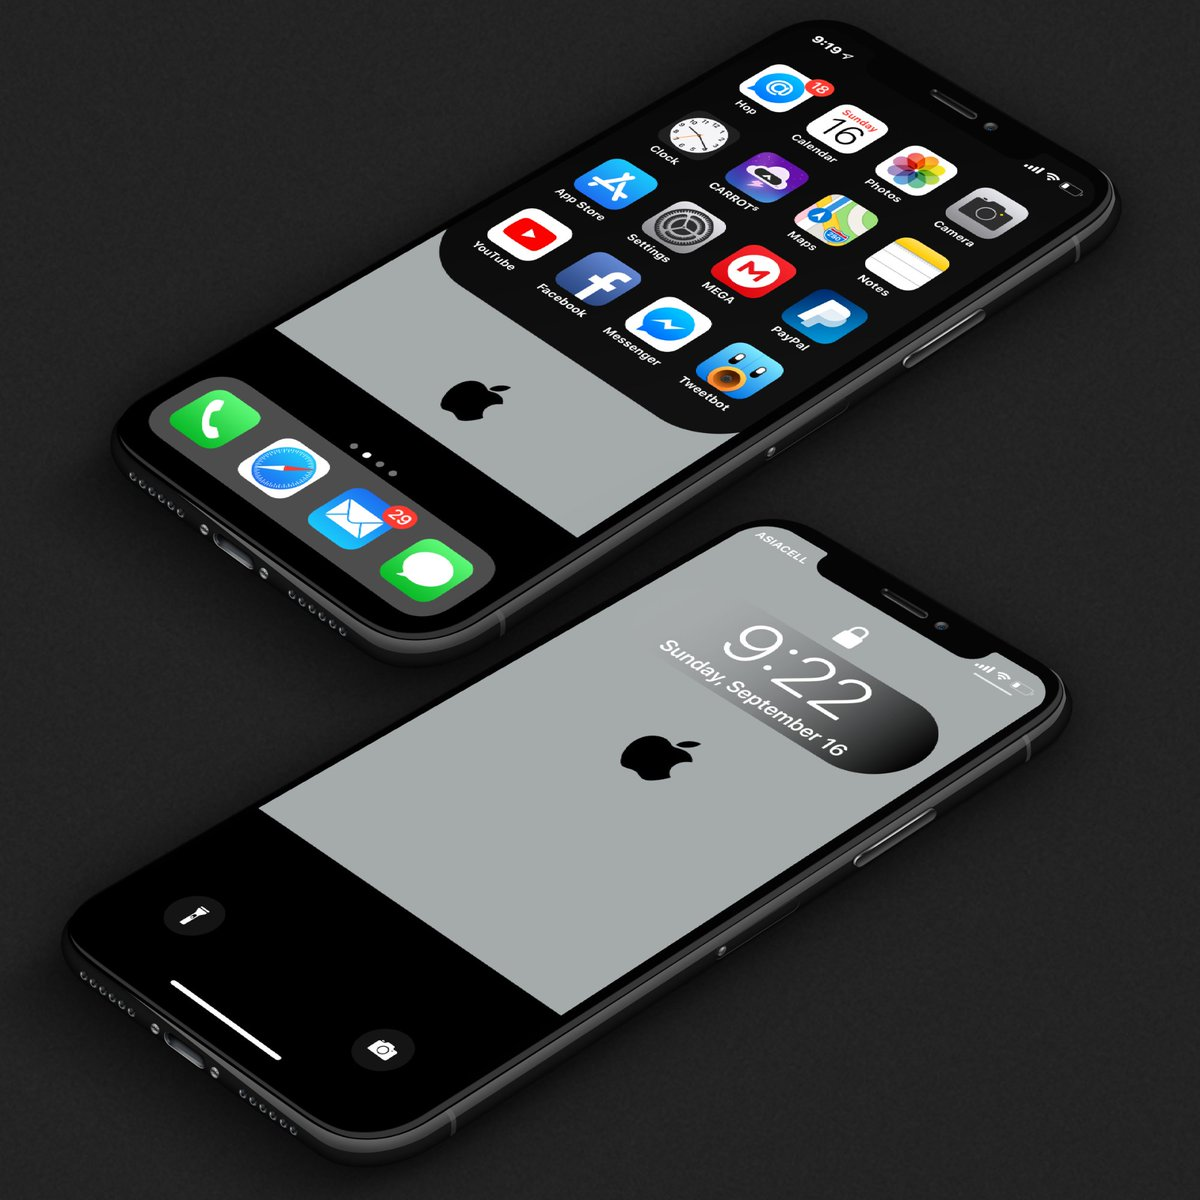 ˇ ˇ On Twitter Old Iphone Color Available Now In Mega